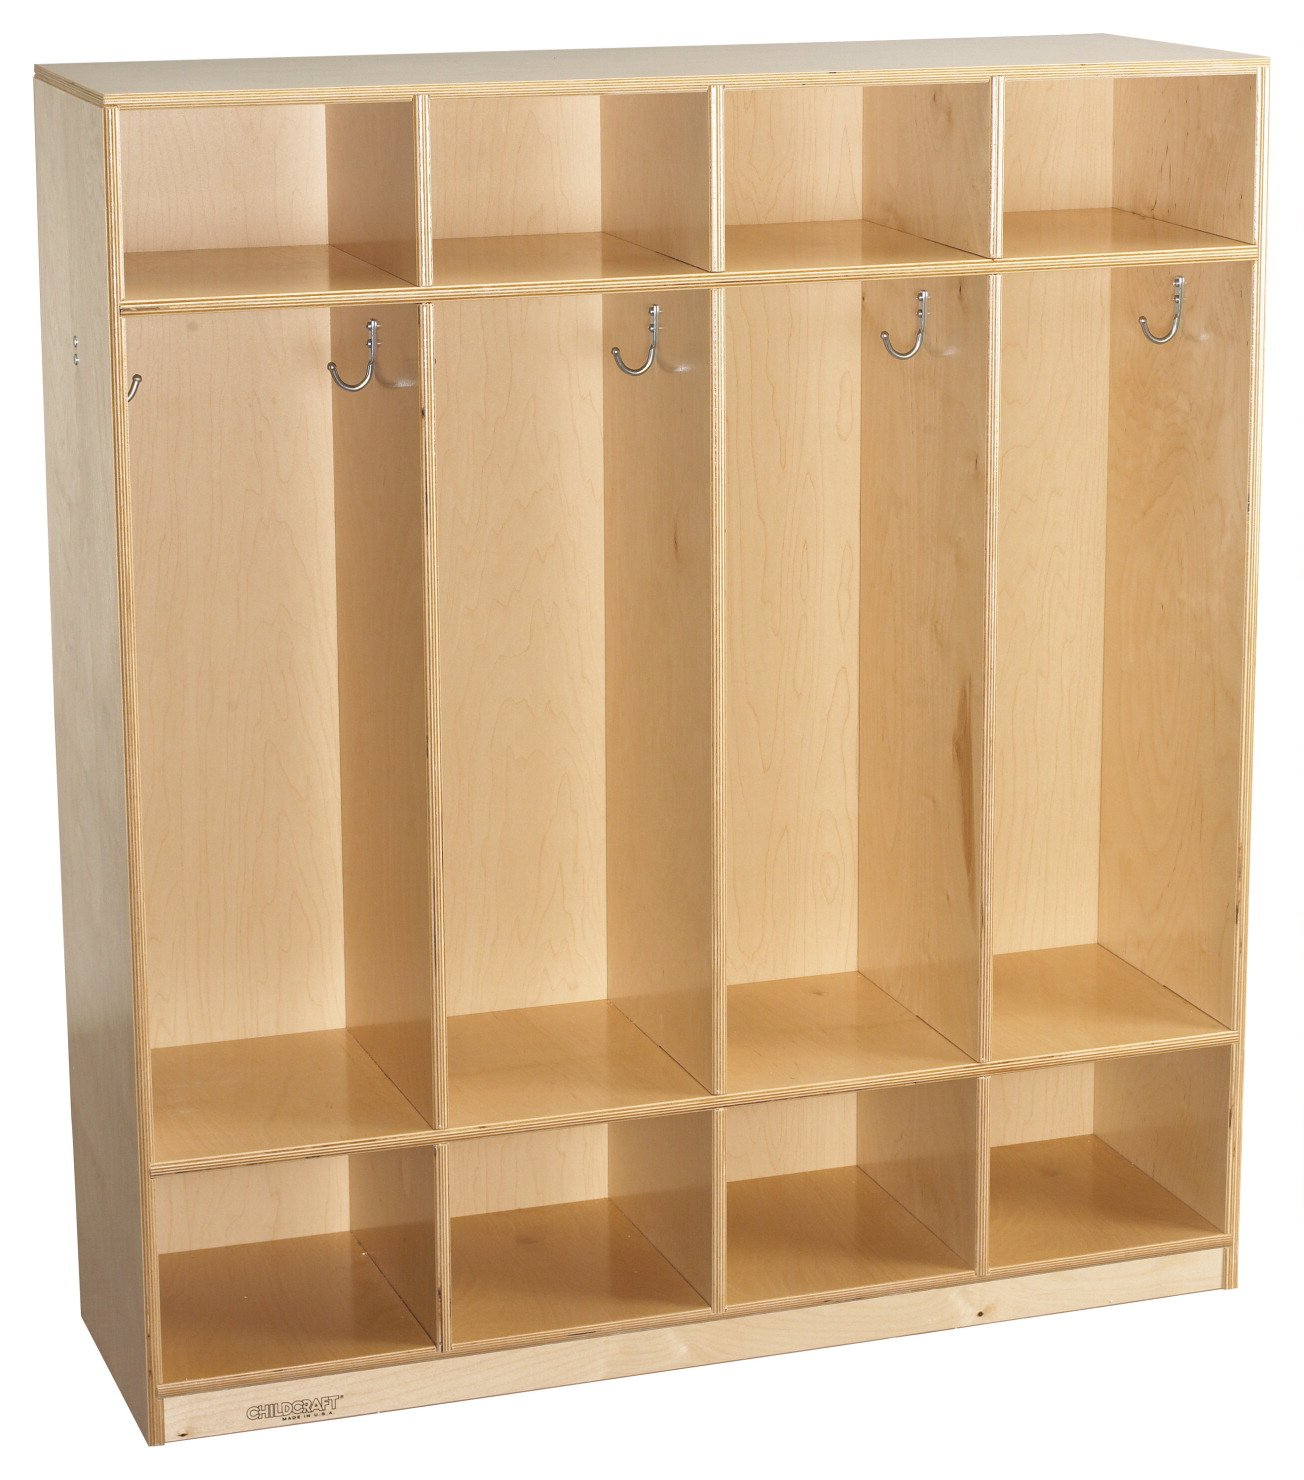 Childcraft Coat Locker, 4 Sections with C, 35-3/4 x 14-3/4 x 48 Inches